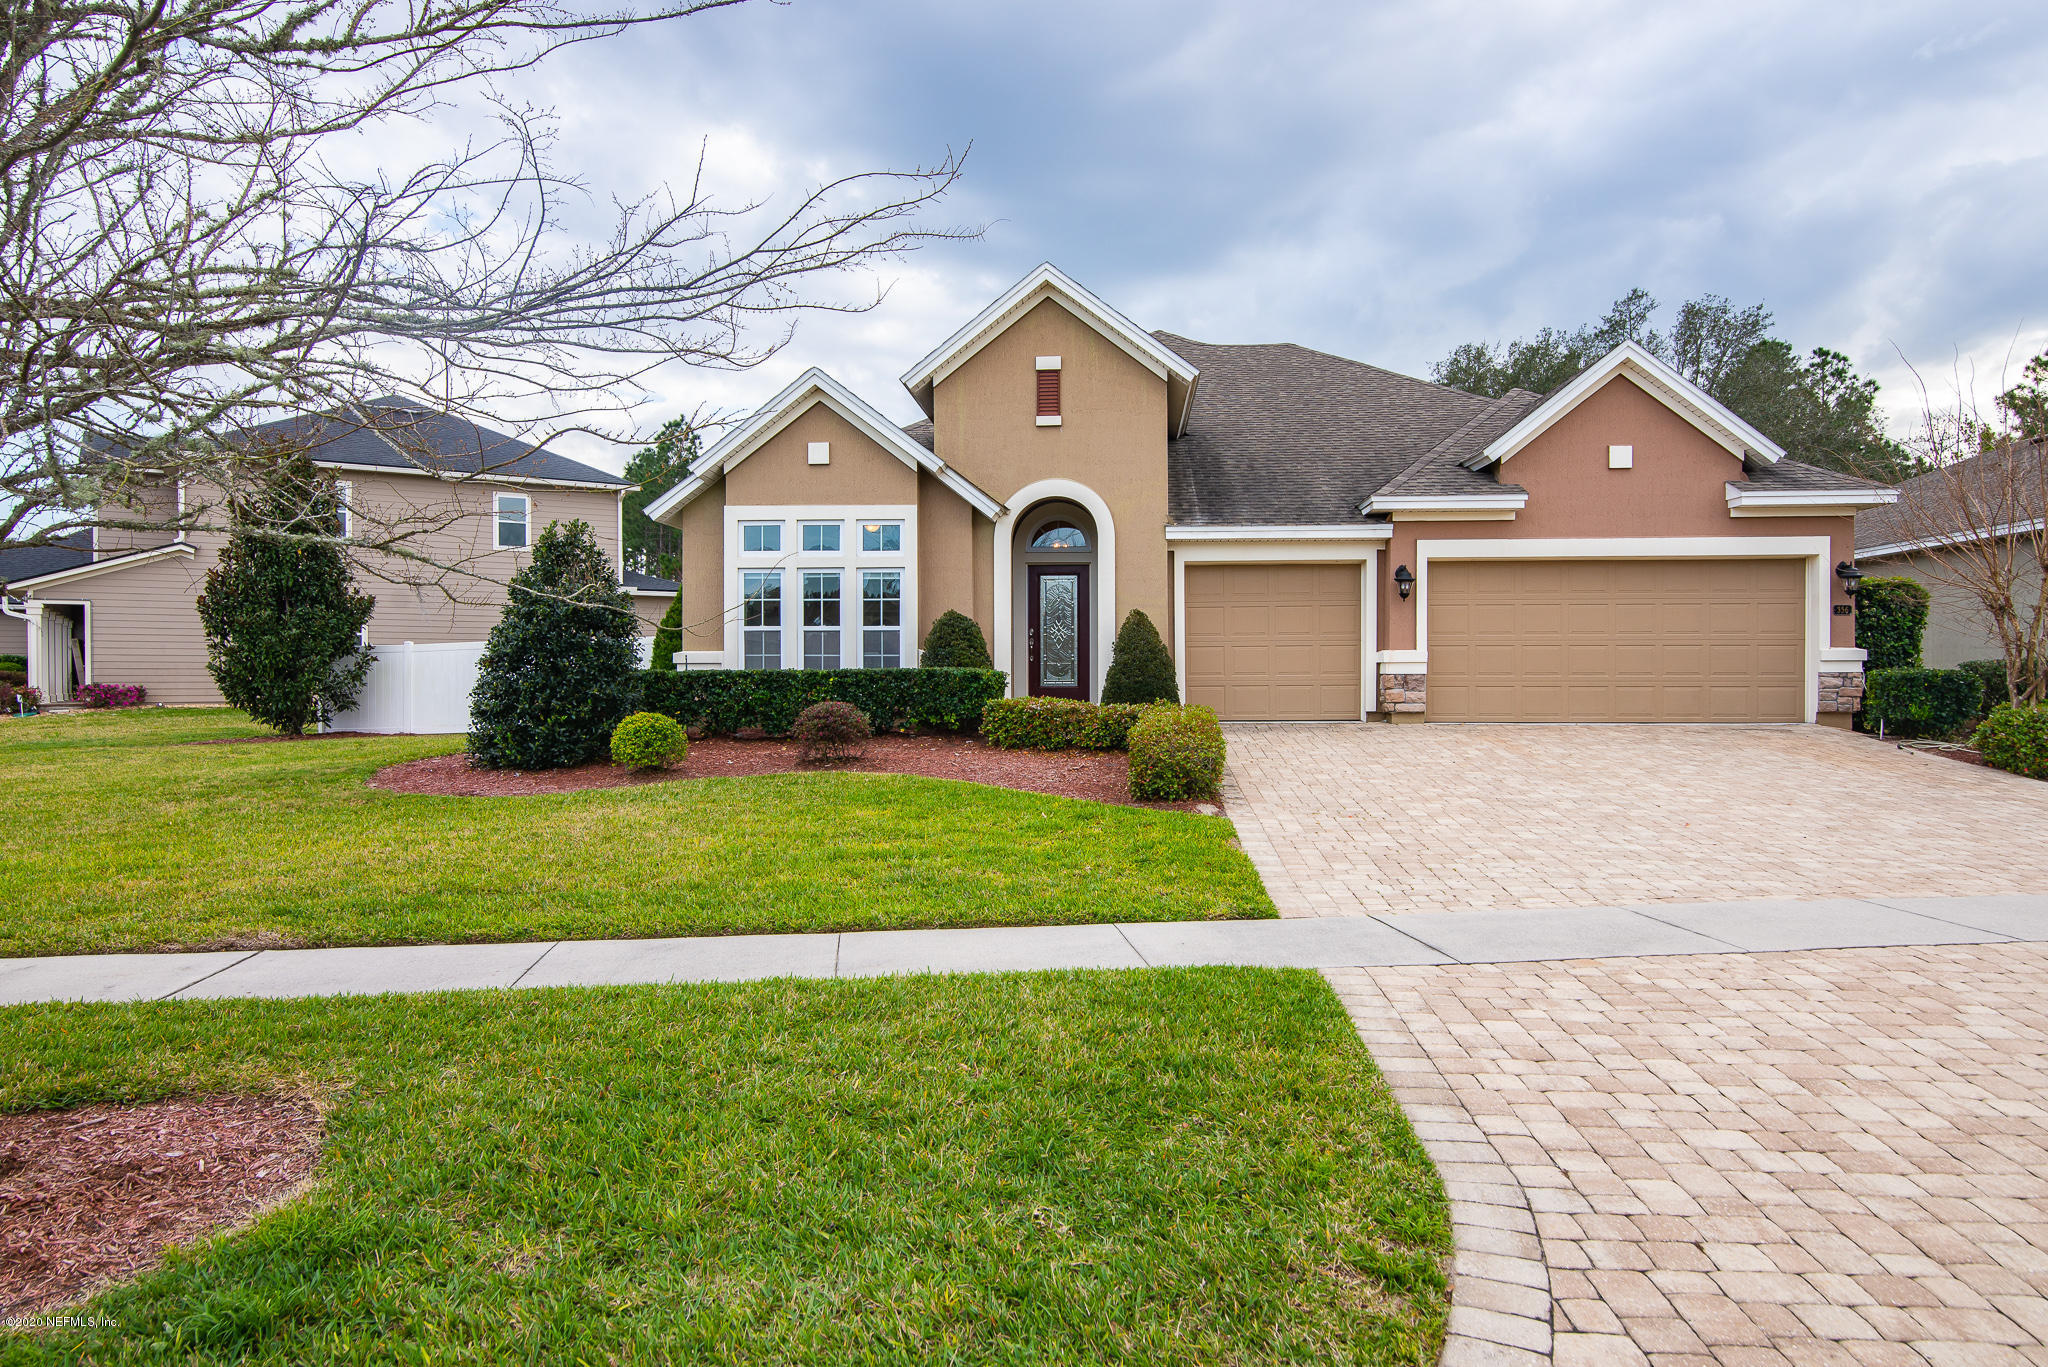 356 WOODLAND GREENS, PONTE VEDRA, FLORIDA 32081, 4 Bedrooms Bedrooms, ,4 BathroomsBathrooms,Residential,For sale,WOODLAND GREENS,1044854